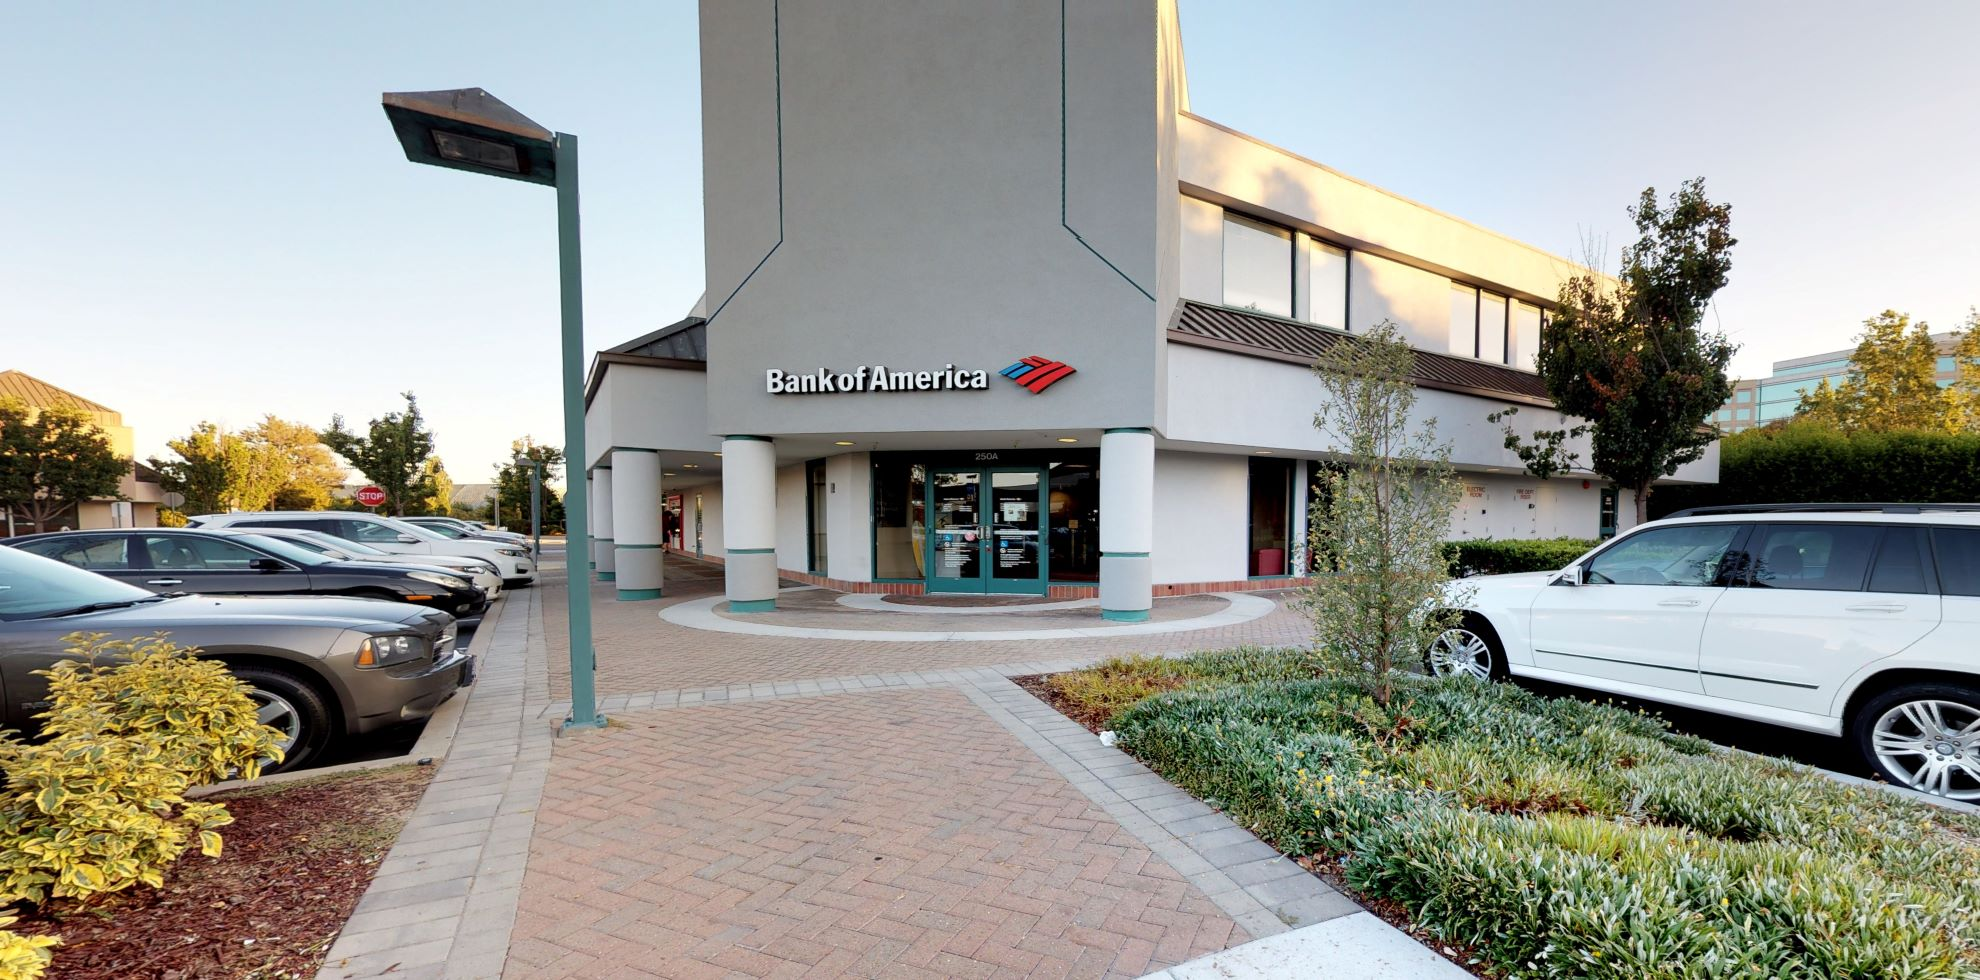 Bank of America financial center with walk-up ATM | 250 Redwood Shores Pkwy STE A, Redwood City, CA 94065